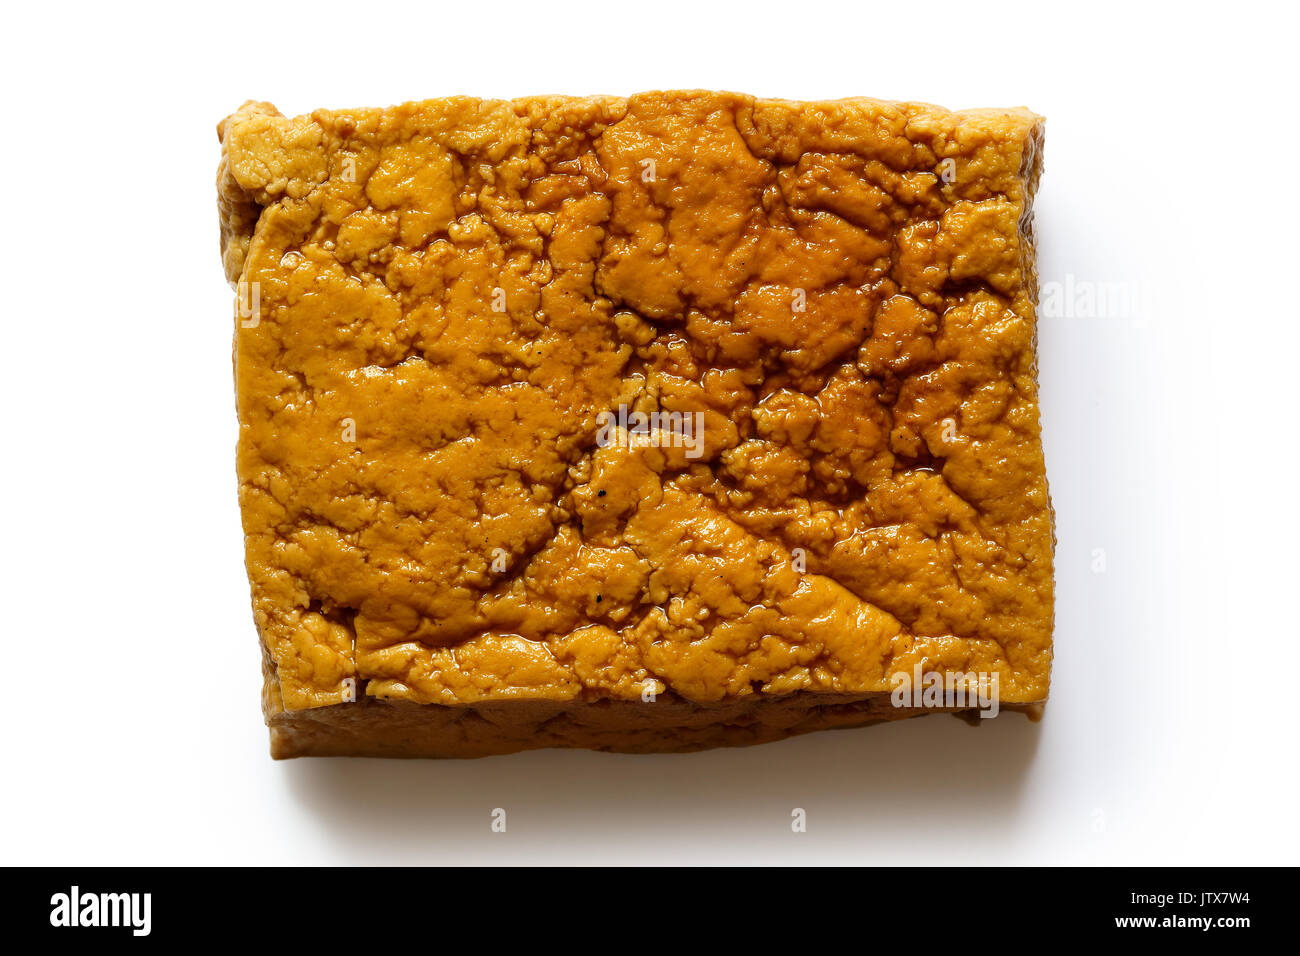 Single block of smoked tofu isolated on white from above. - Stock Image